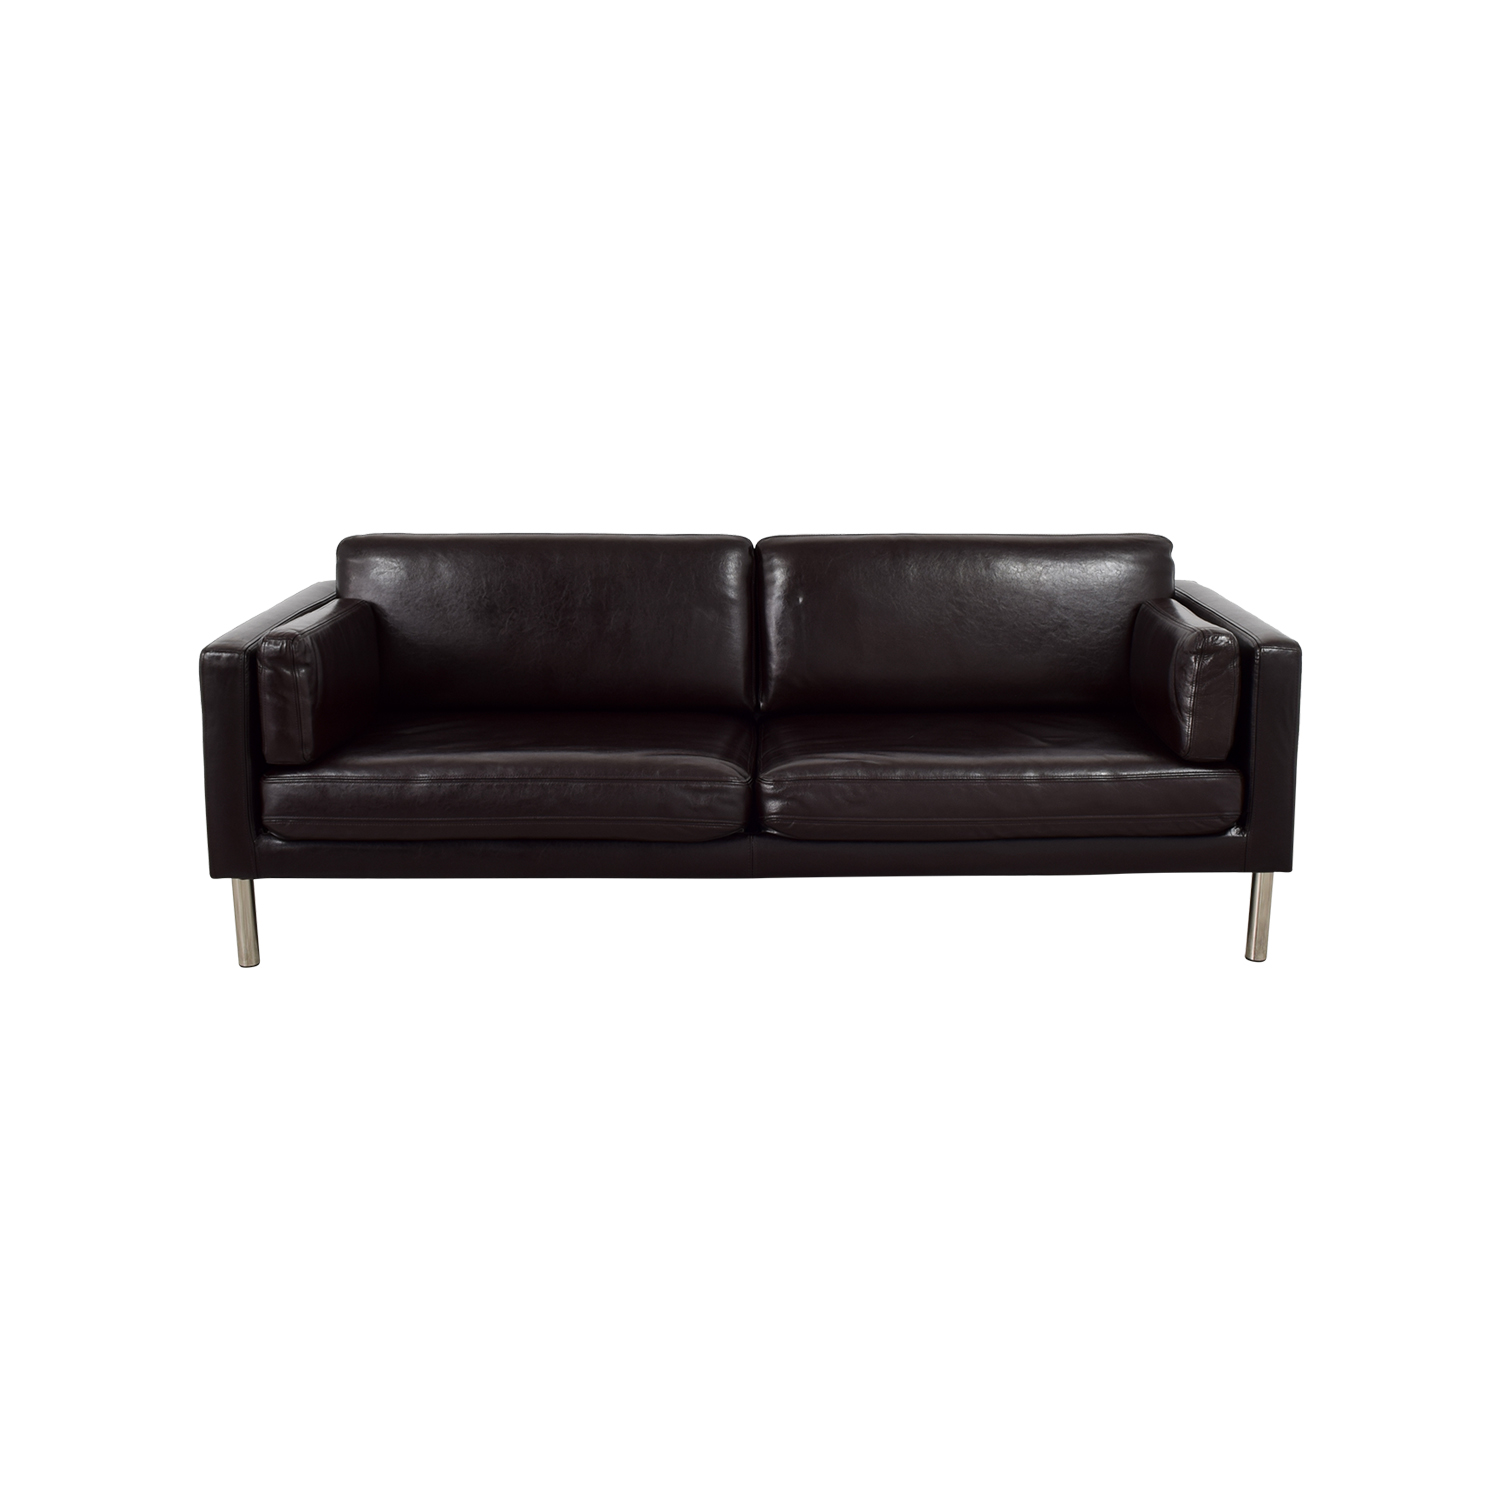 Shop IEKA Sater Brown Leather Couch IKEA ...